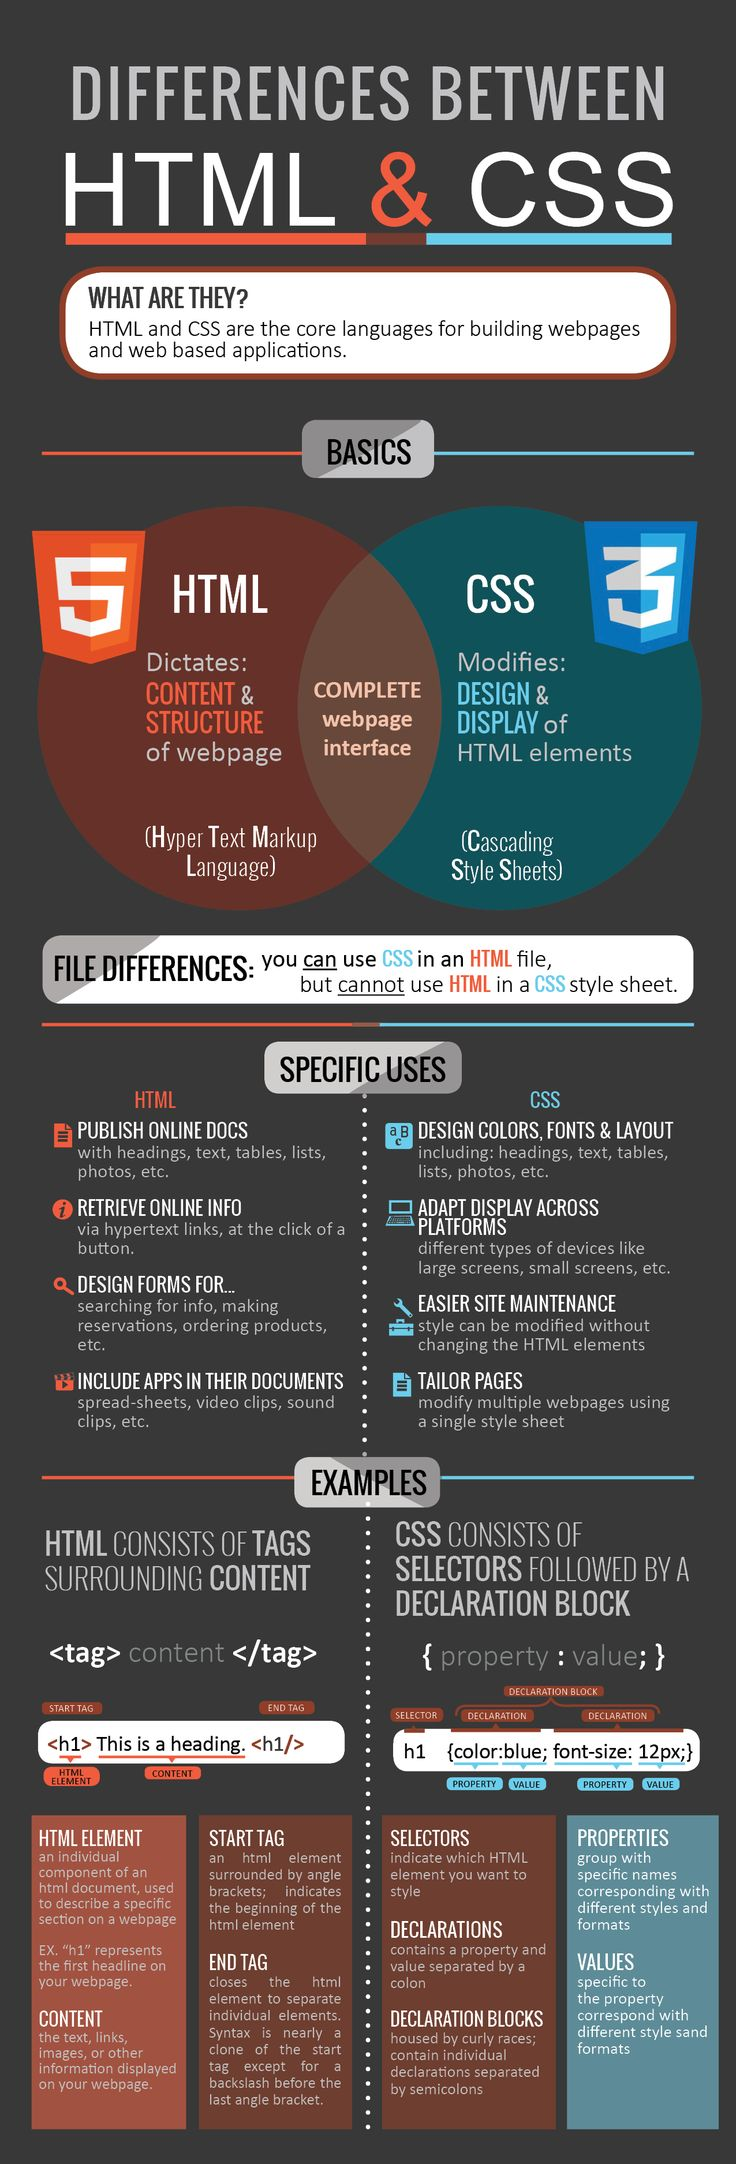 Key differences between HTML & CSS